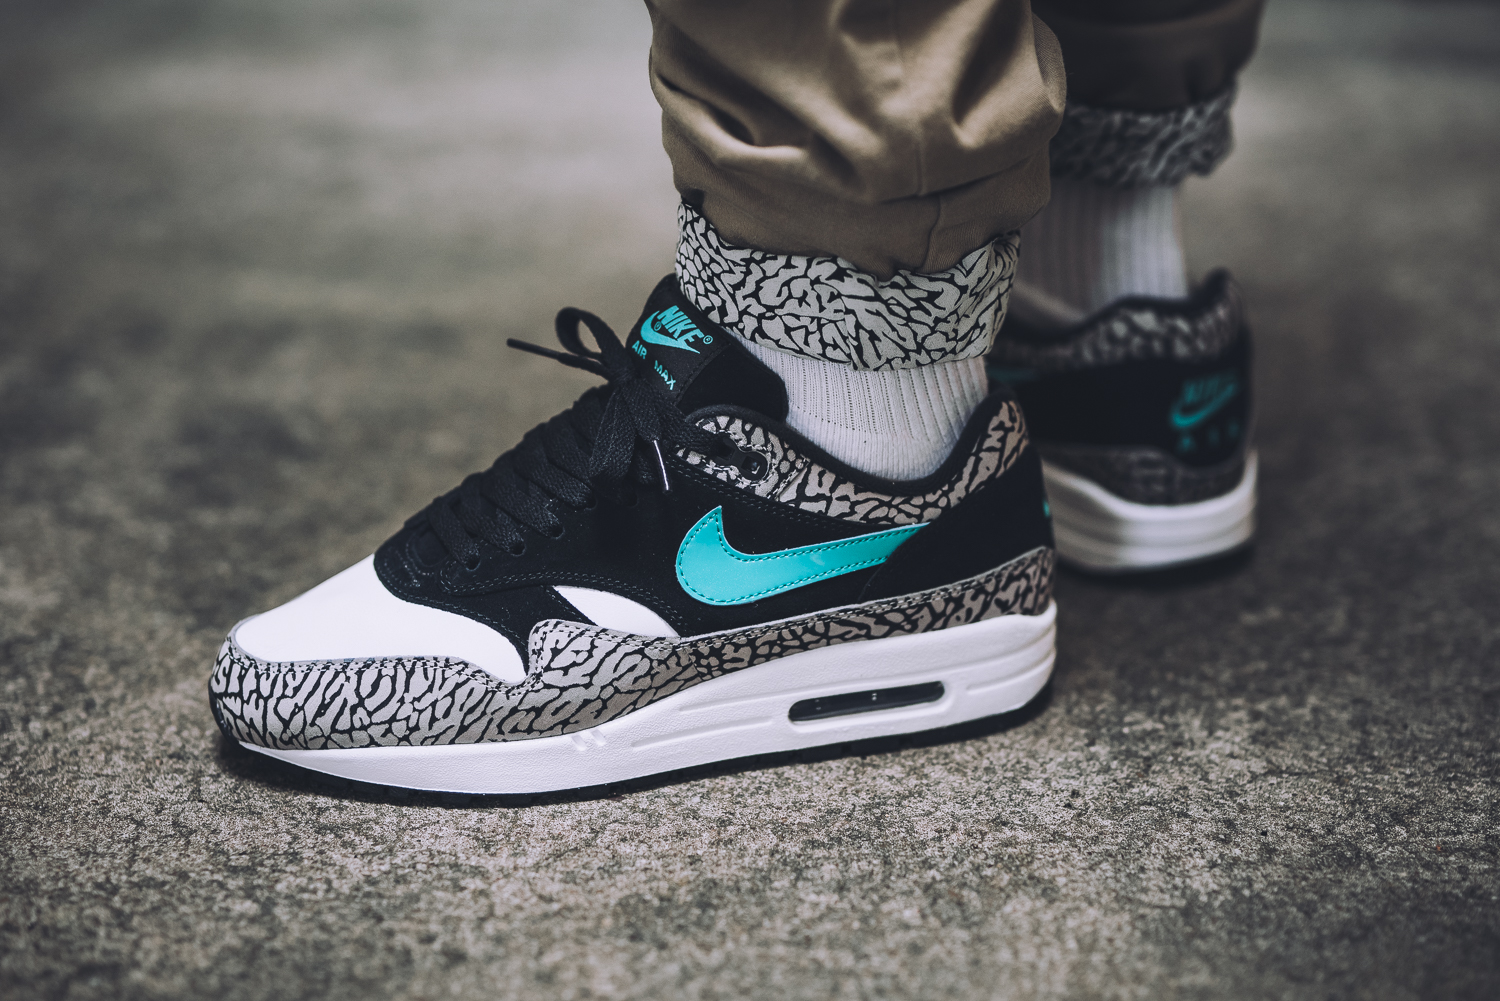 Nike Air Max 1 x Atmos Elephant – Store Overview